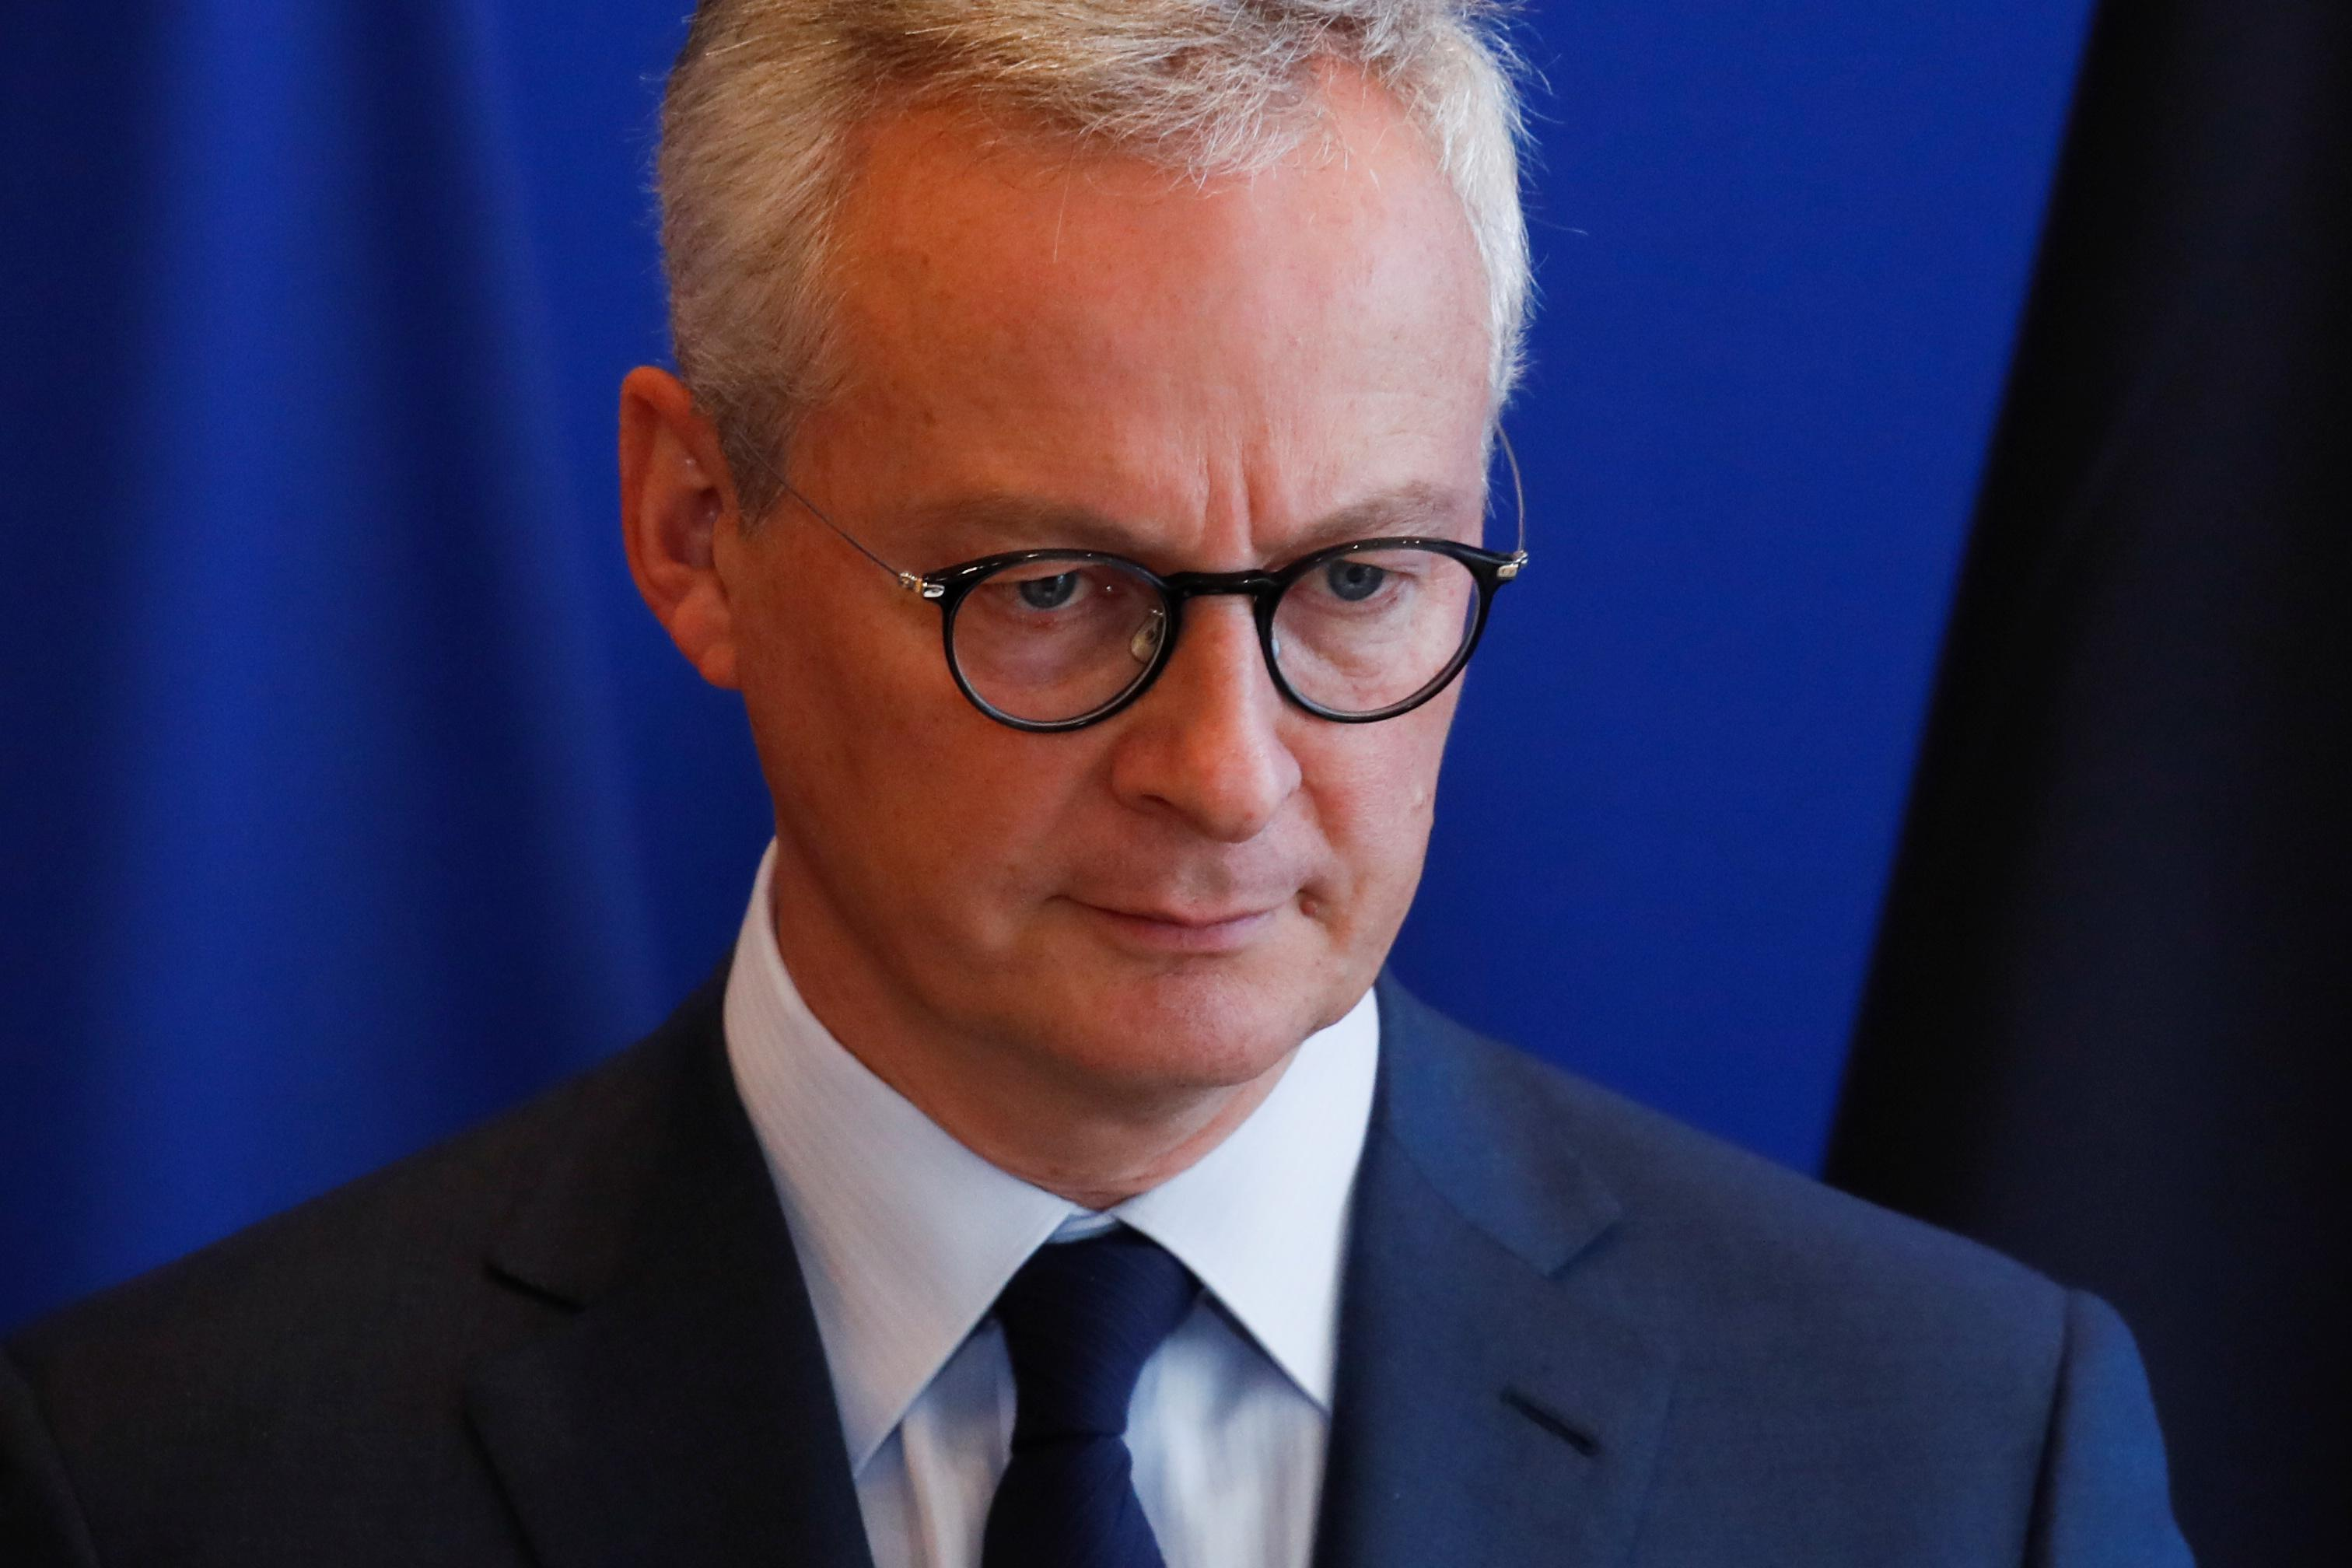 French Finance Minister: 'glimmer of hope' on Brexit deal